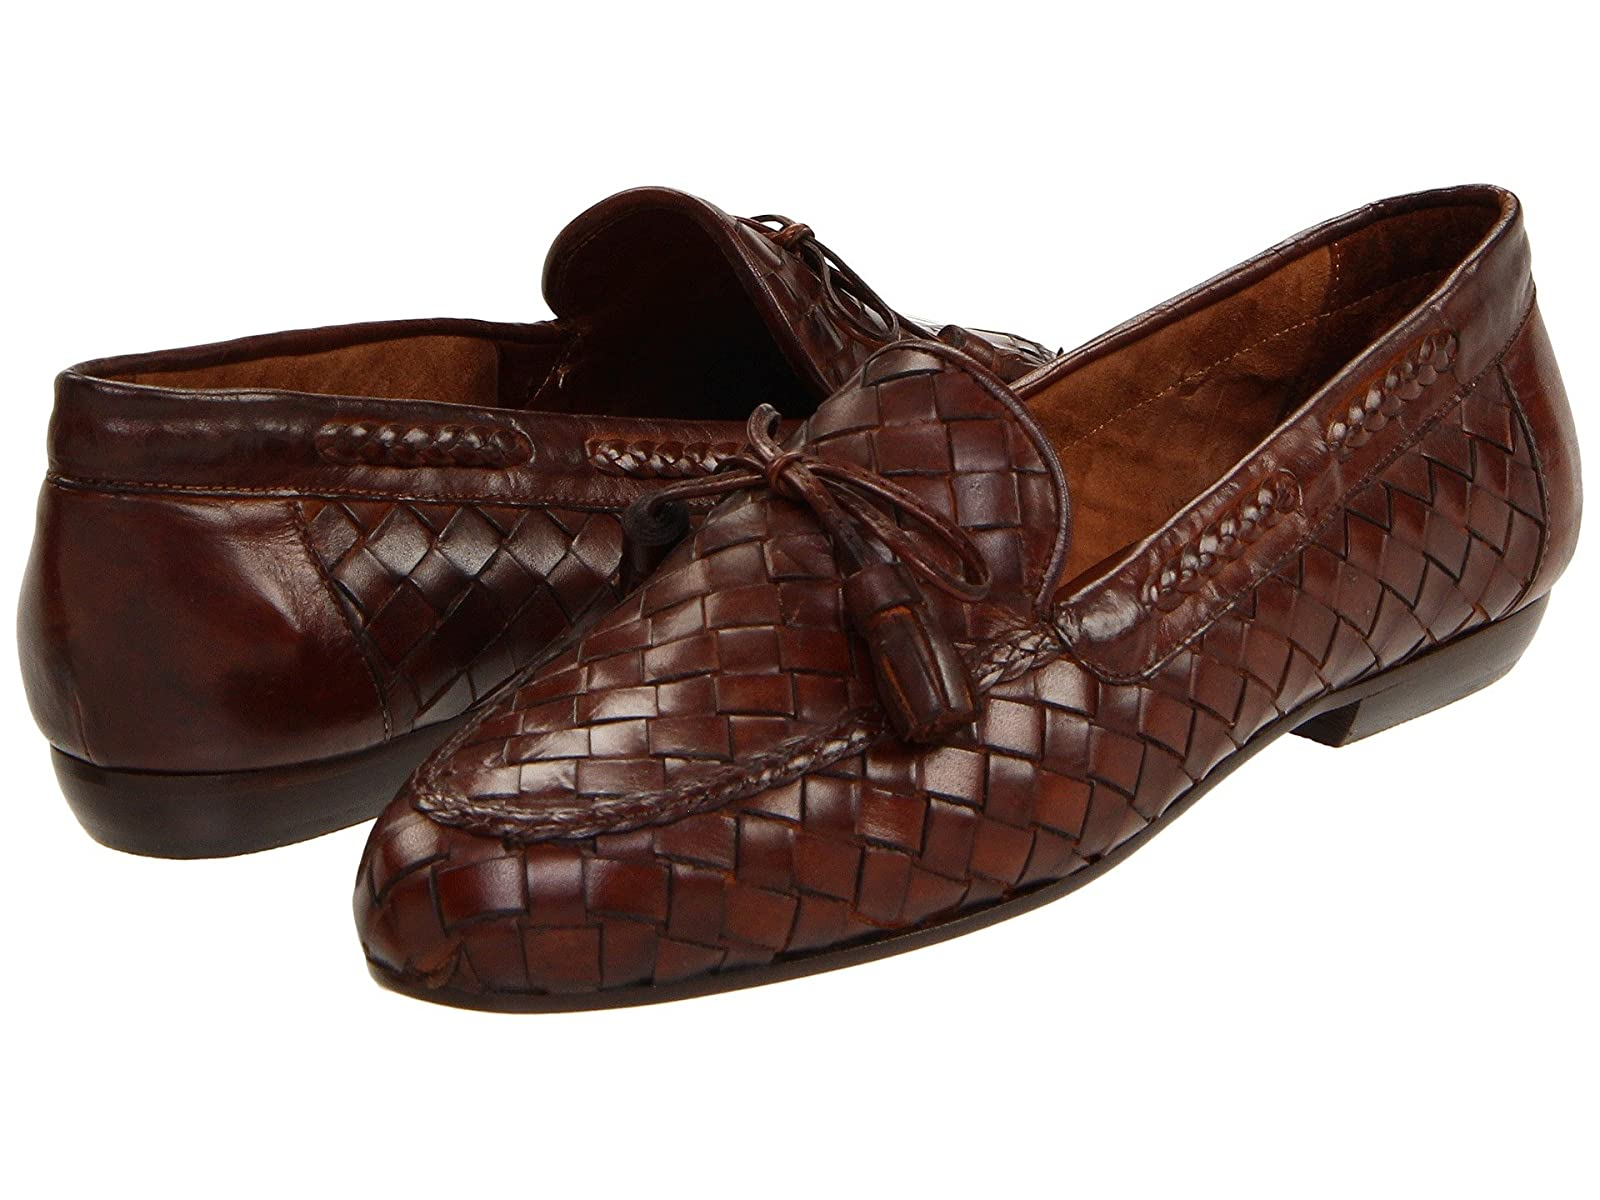 Sesto Meucci NedaAtmospheric grades have affordable shoes